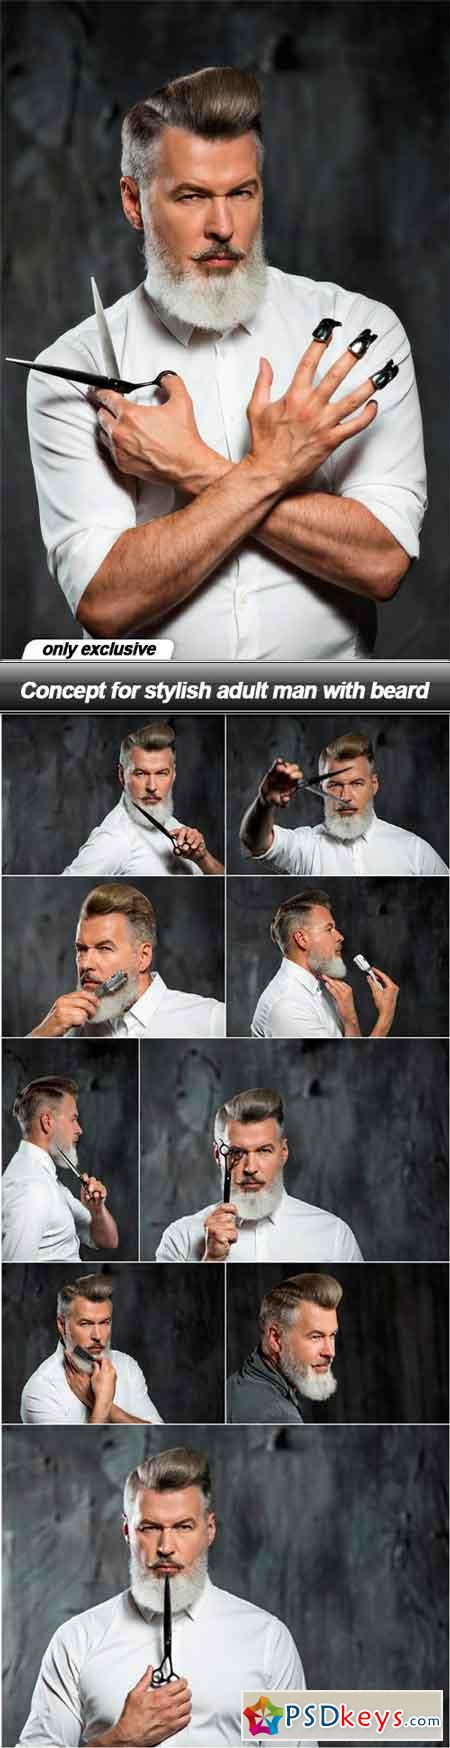 Concept for stylish adult man with beard - 10 UHQ JPEG